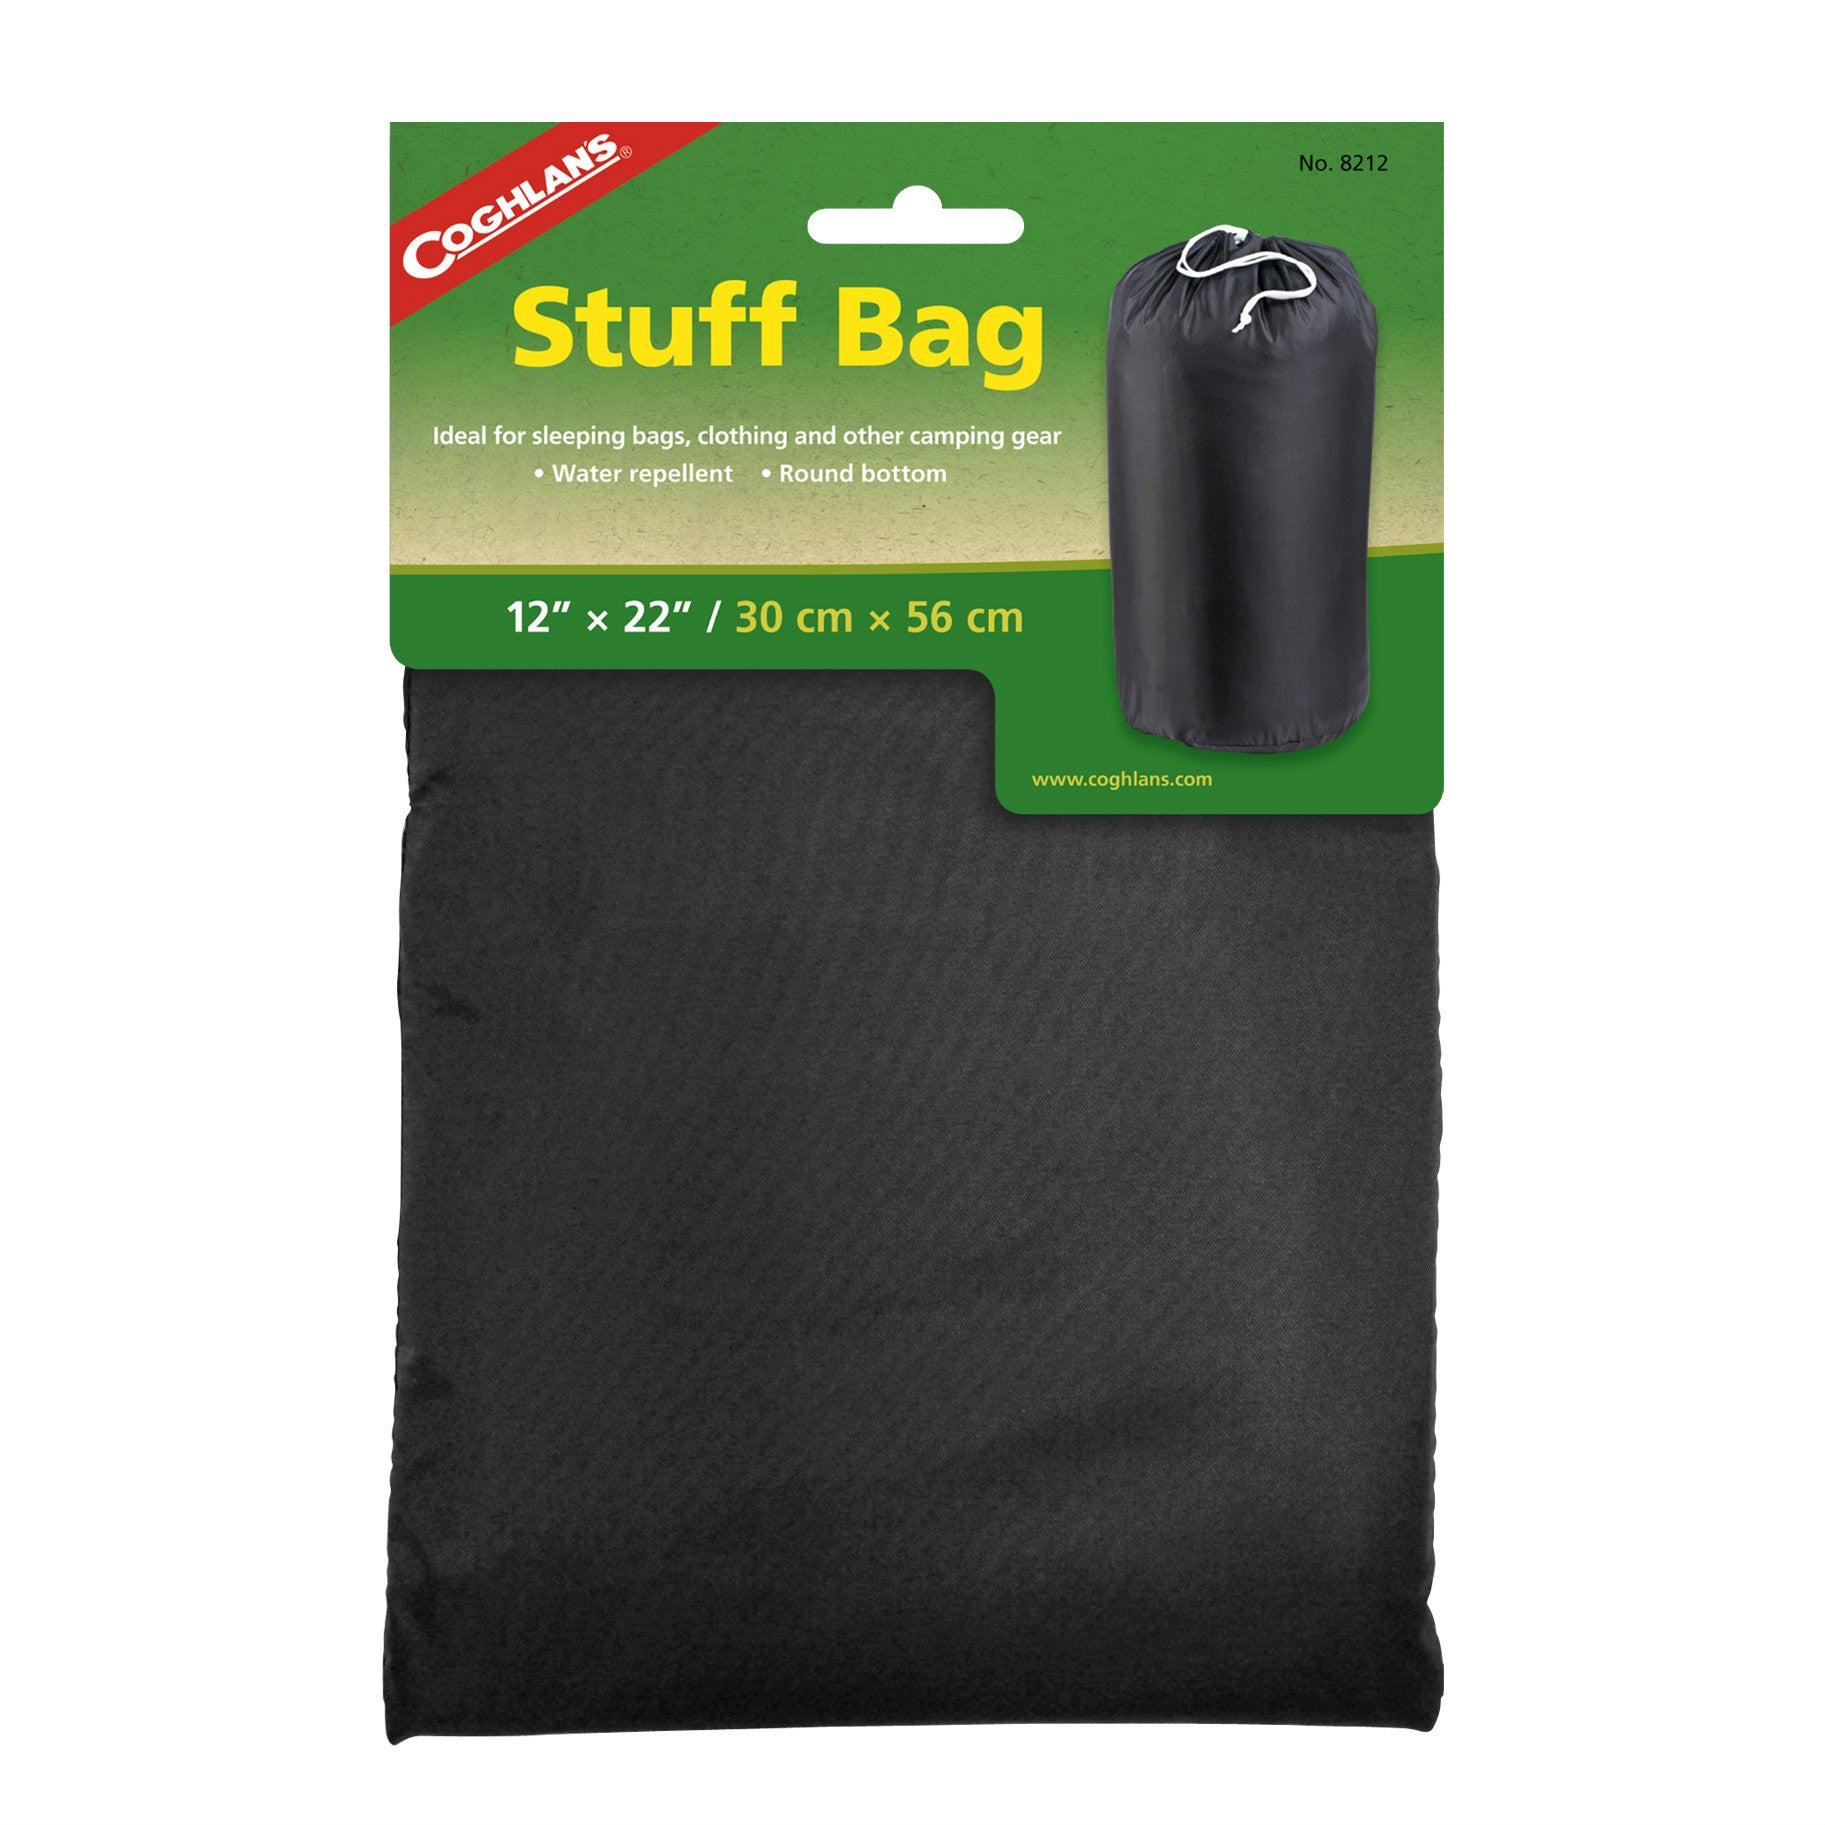 "Coghlan's Stuff Bag 12"" x 22"" (Medium)"